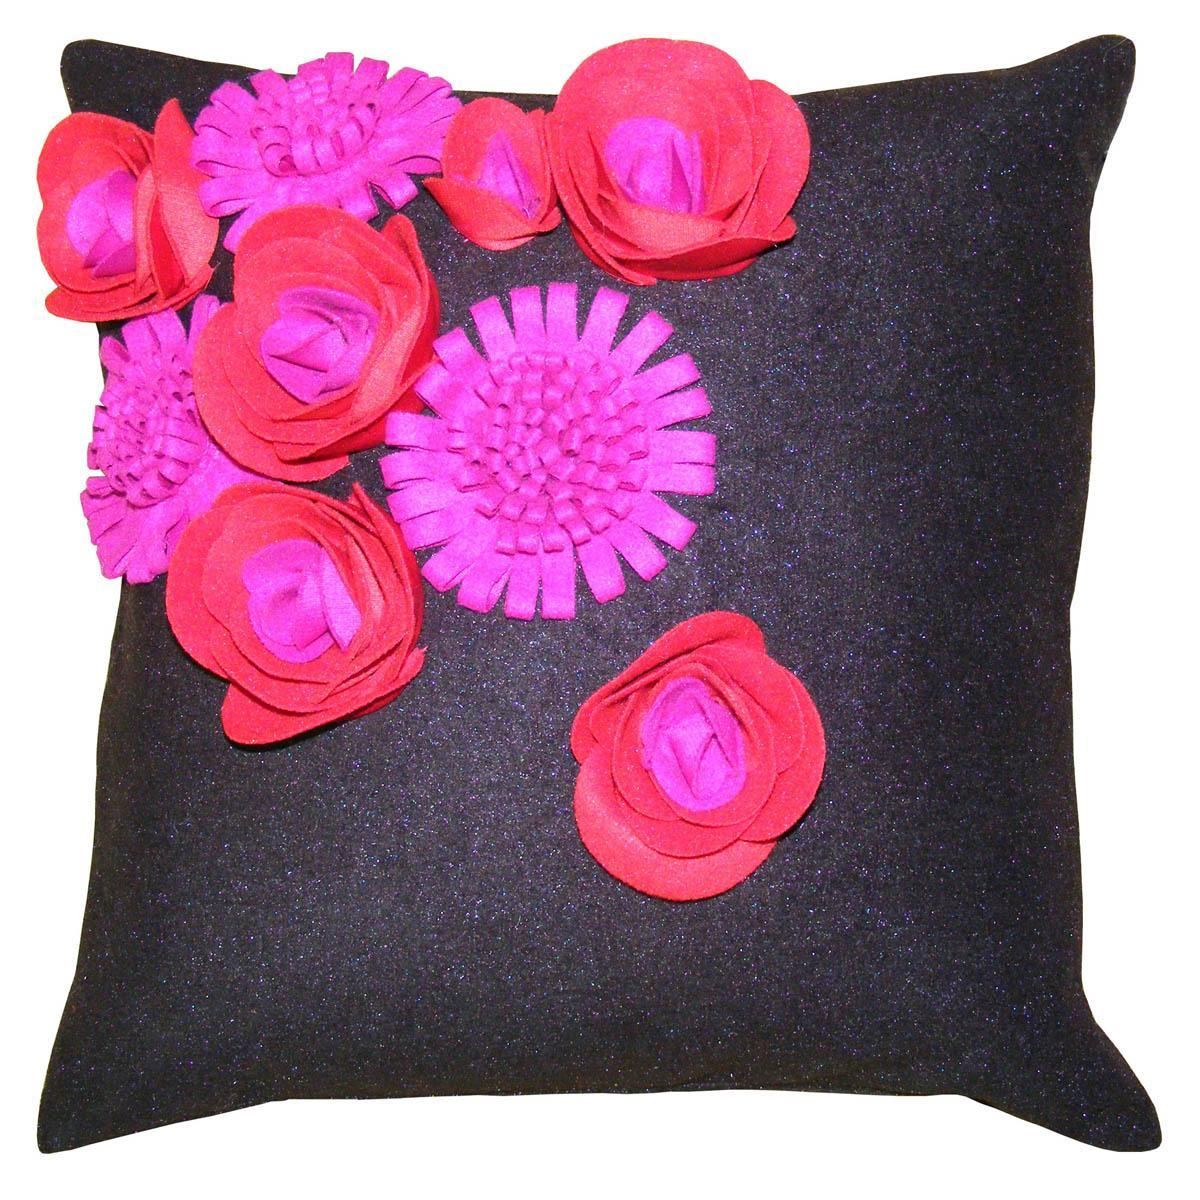 Riva Cushions And Throws Rosanna  45cm x 45cm CC Black/Red Picture